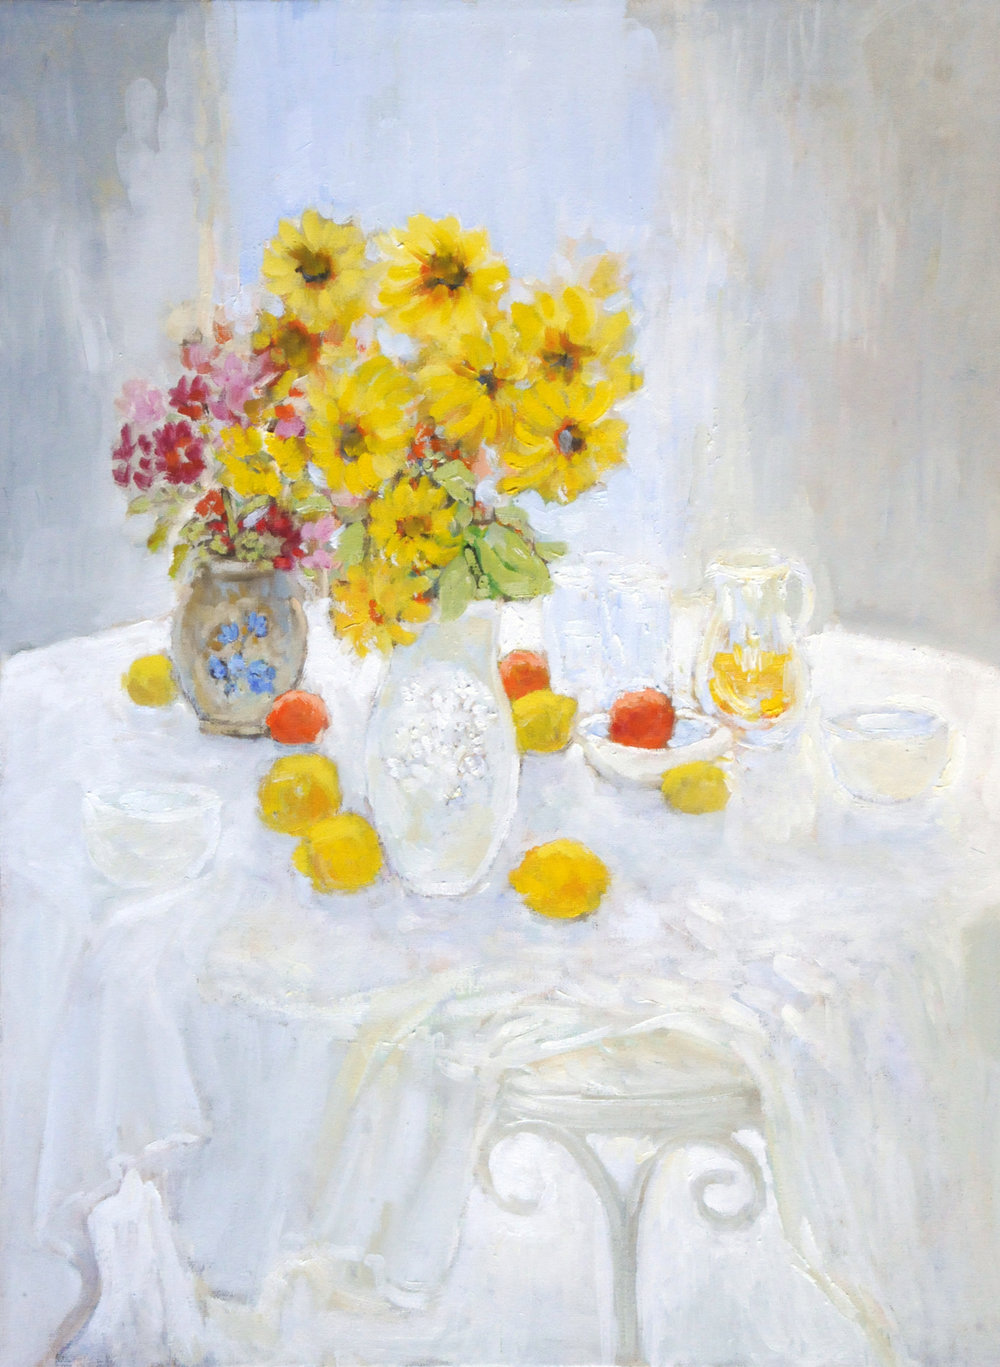 Still life with sunflowers,Michael Khoury